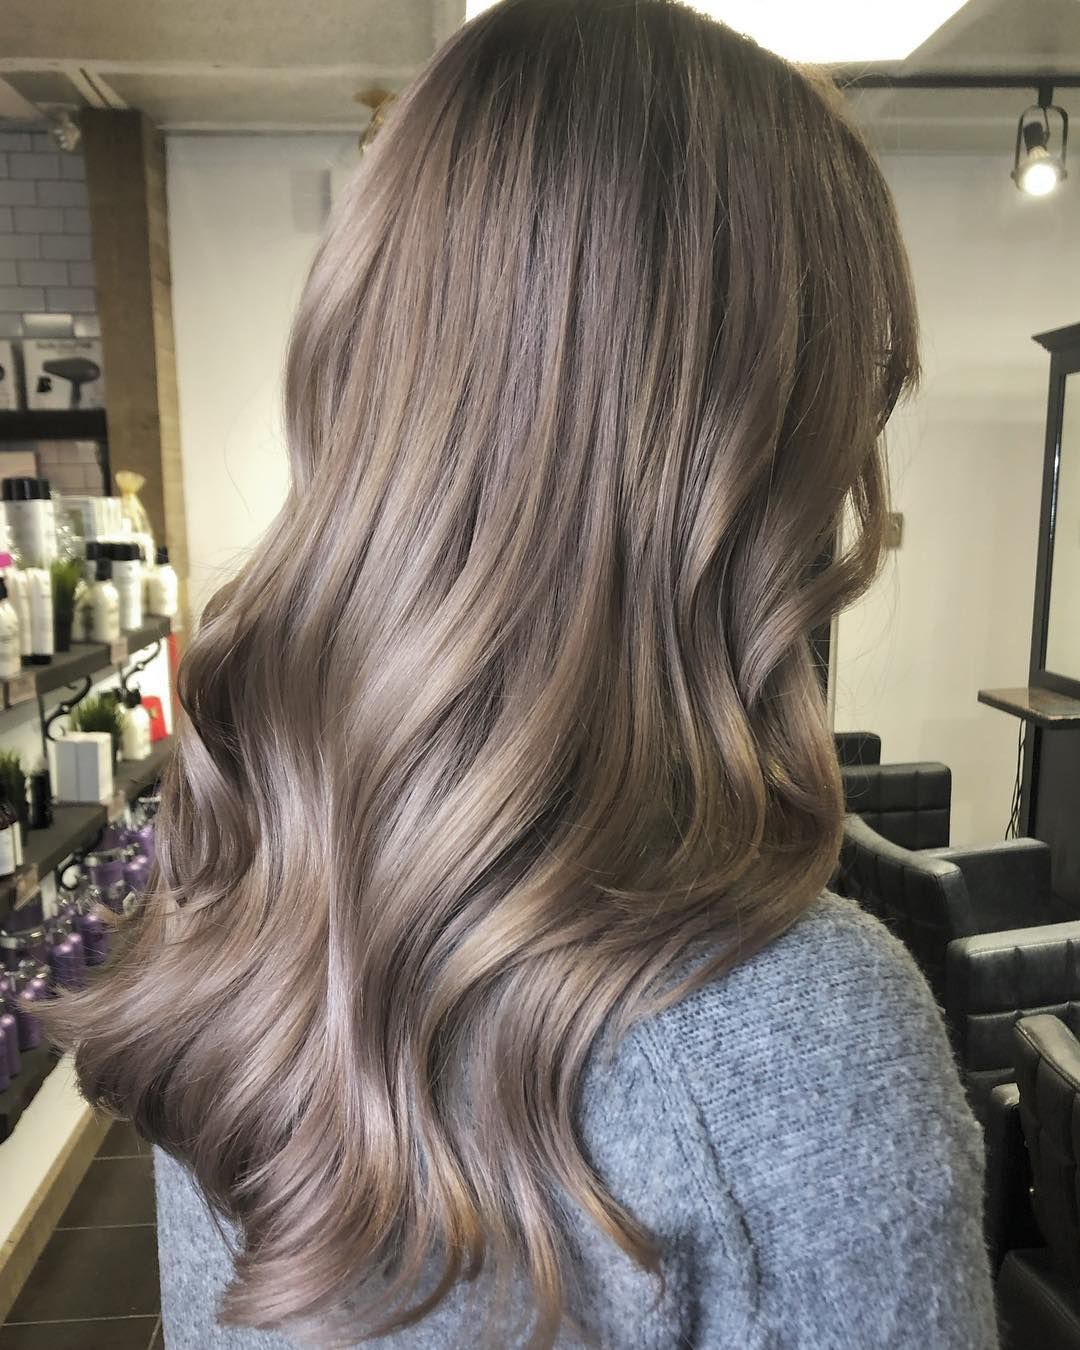 Hairstyles trend 2019: Mushroom Blonde is the perfect color for blonde and brown hair